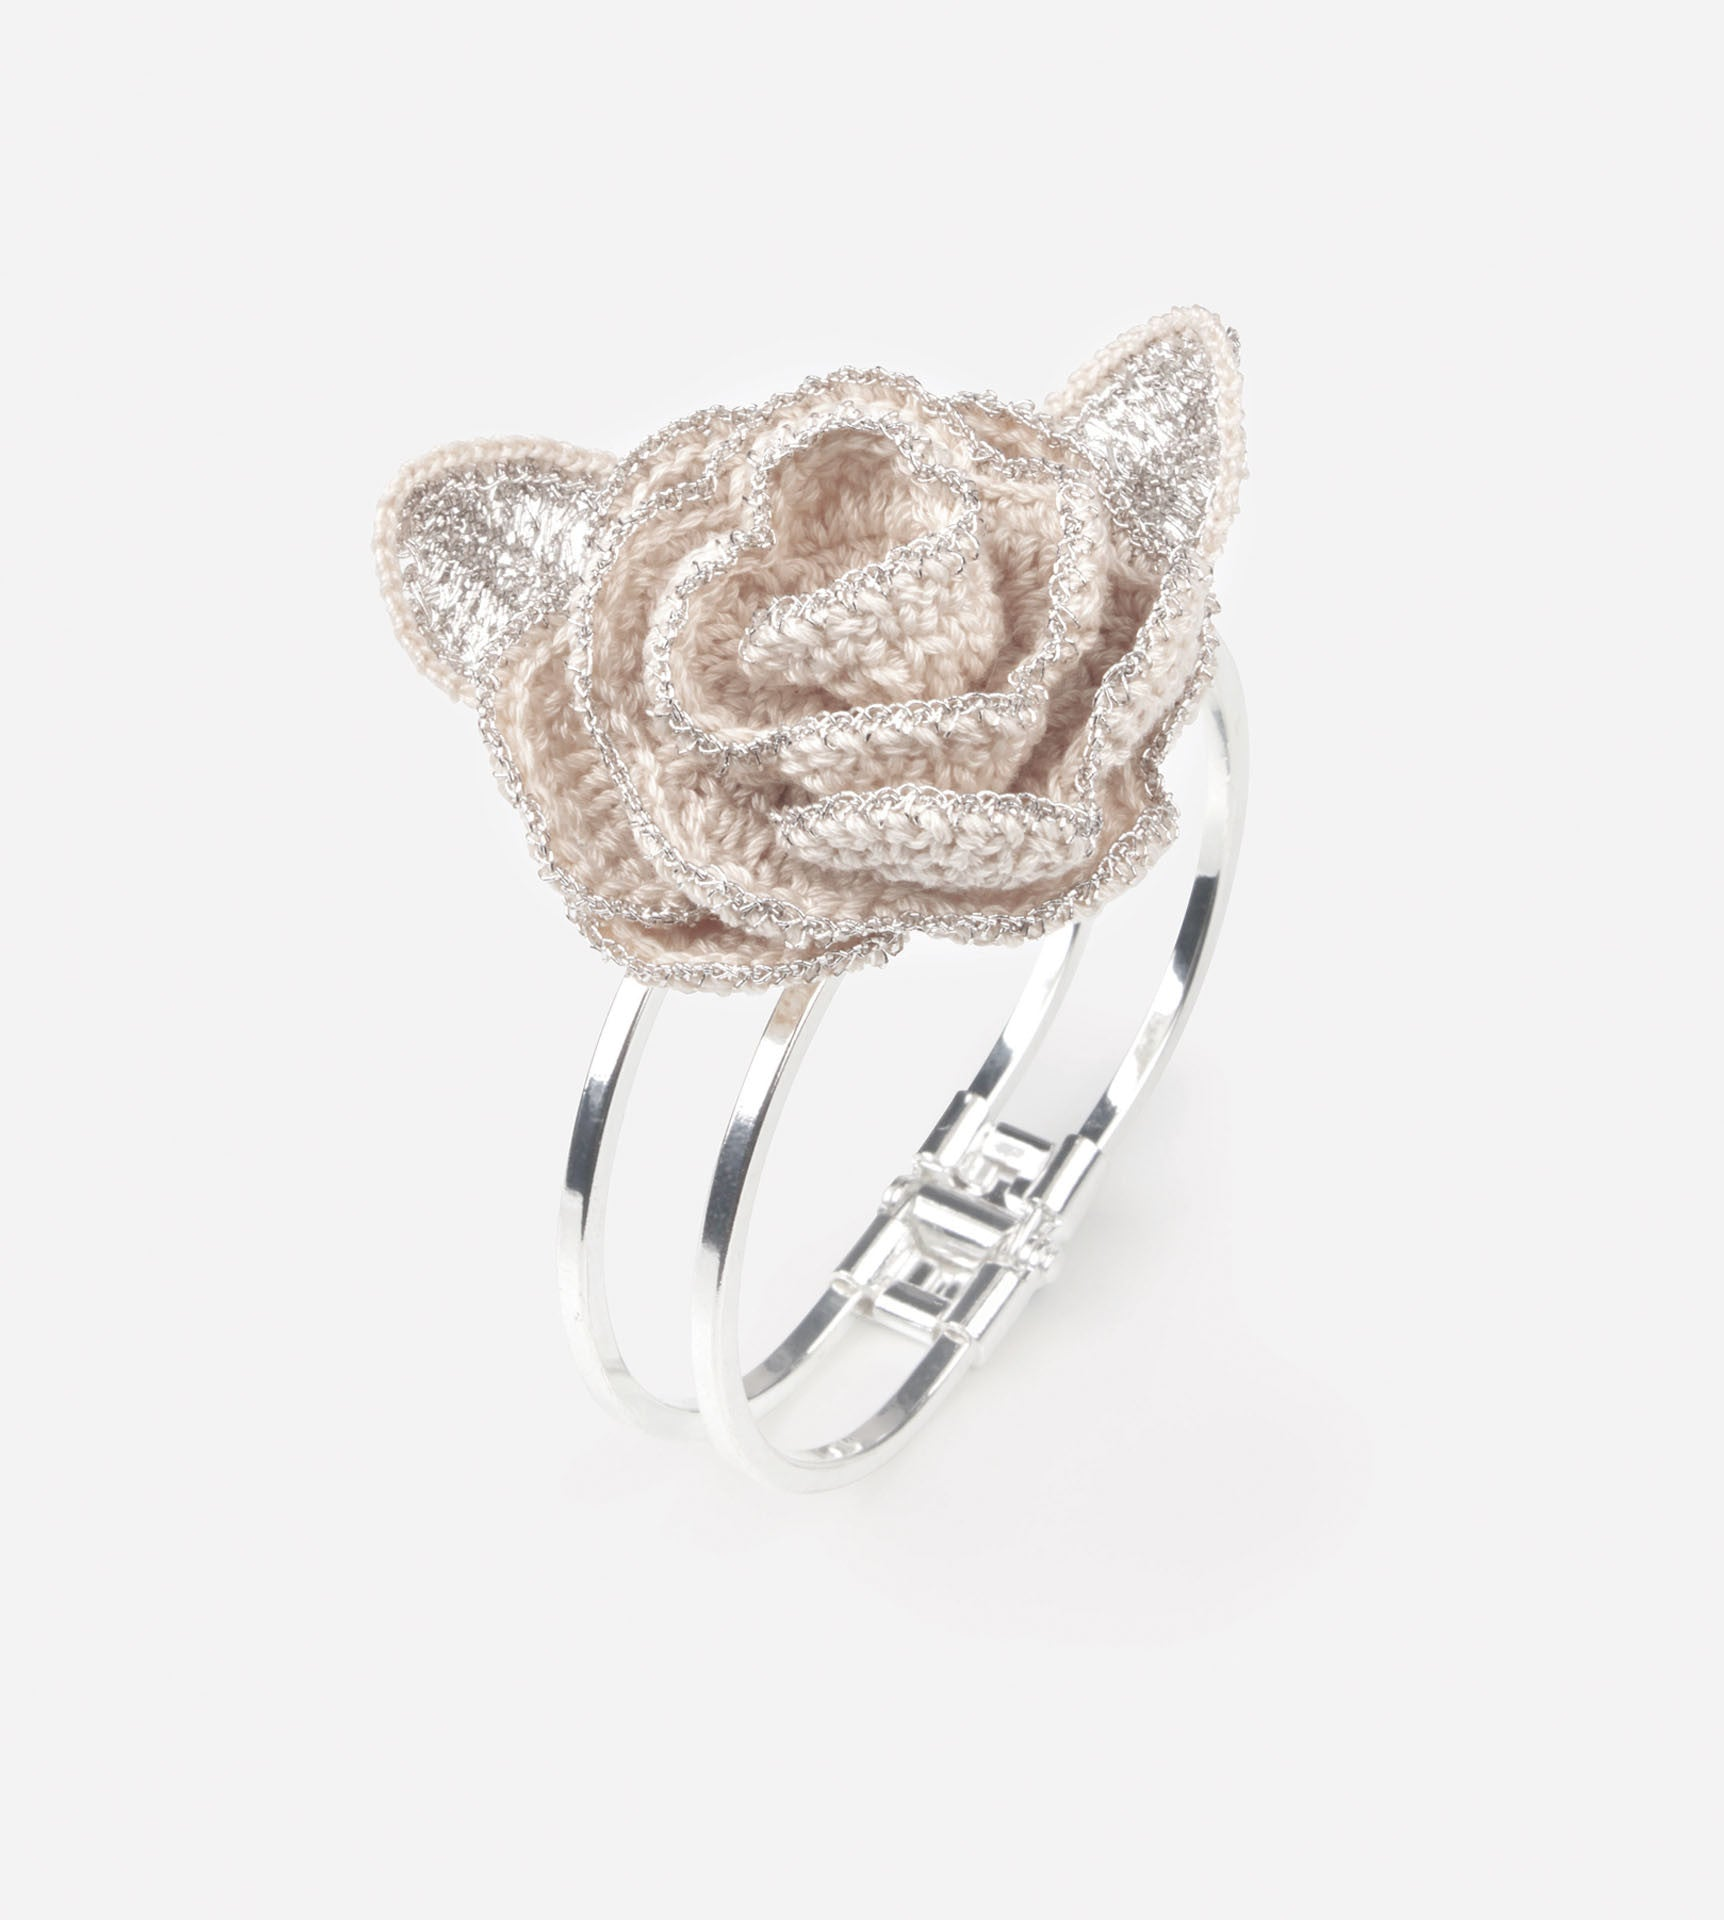 Premium Rosedew Silver Crochet Bangle